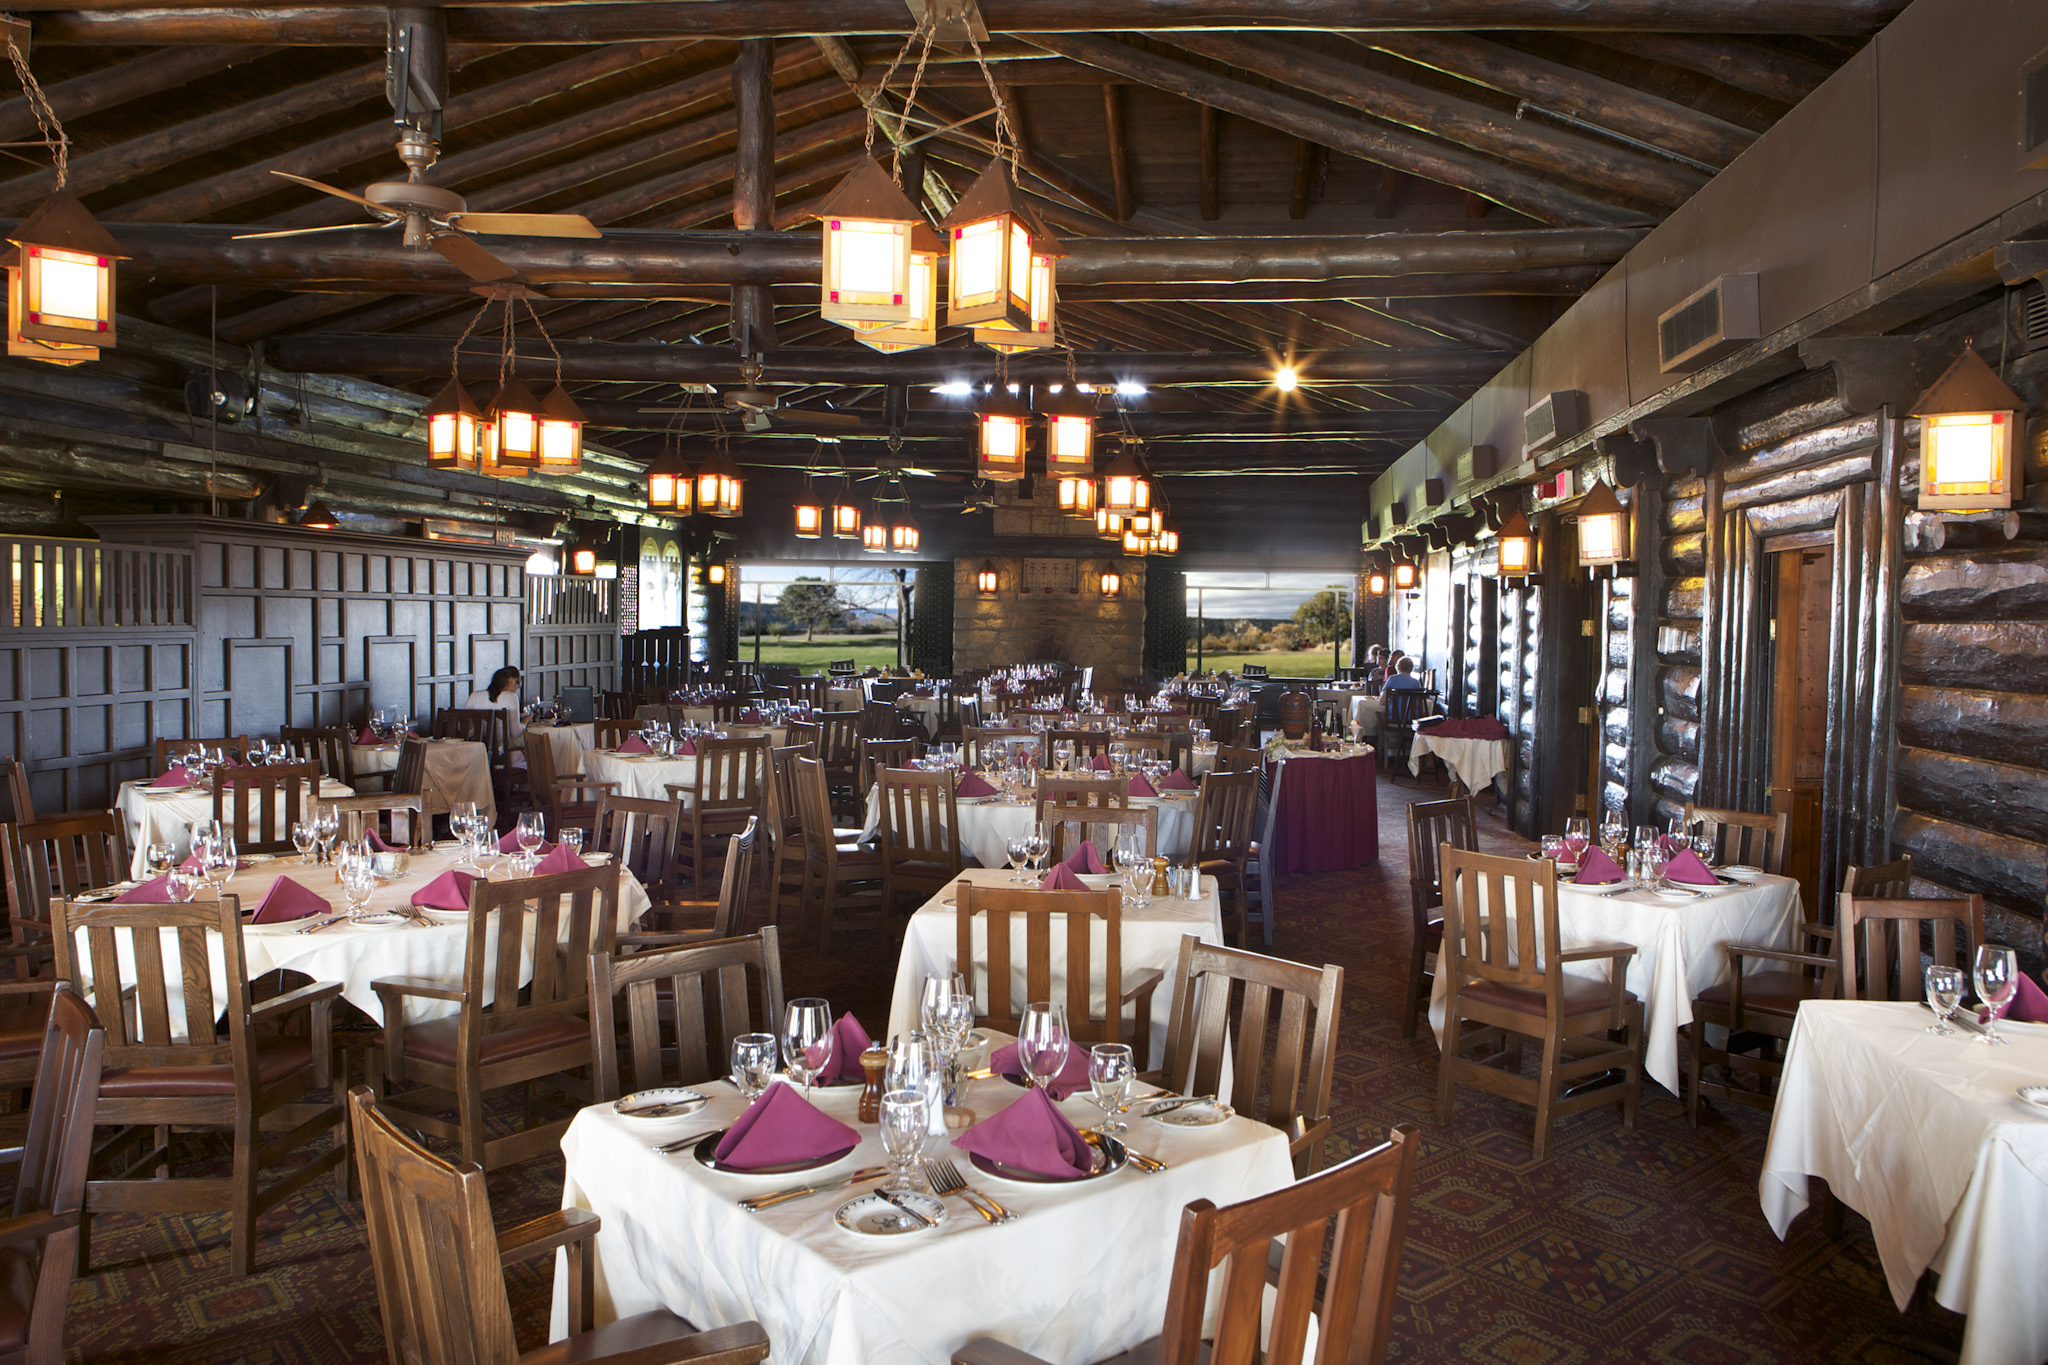 El Tovar Dining Room. Catering   Dining Services   Grand Canyon National Park Lodges